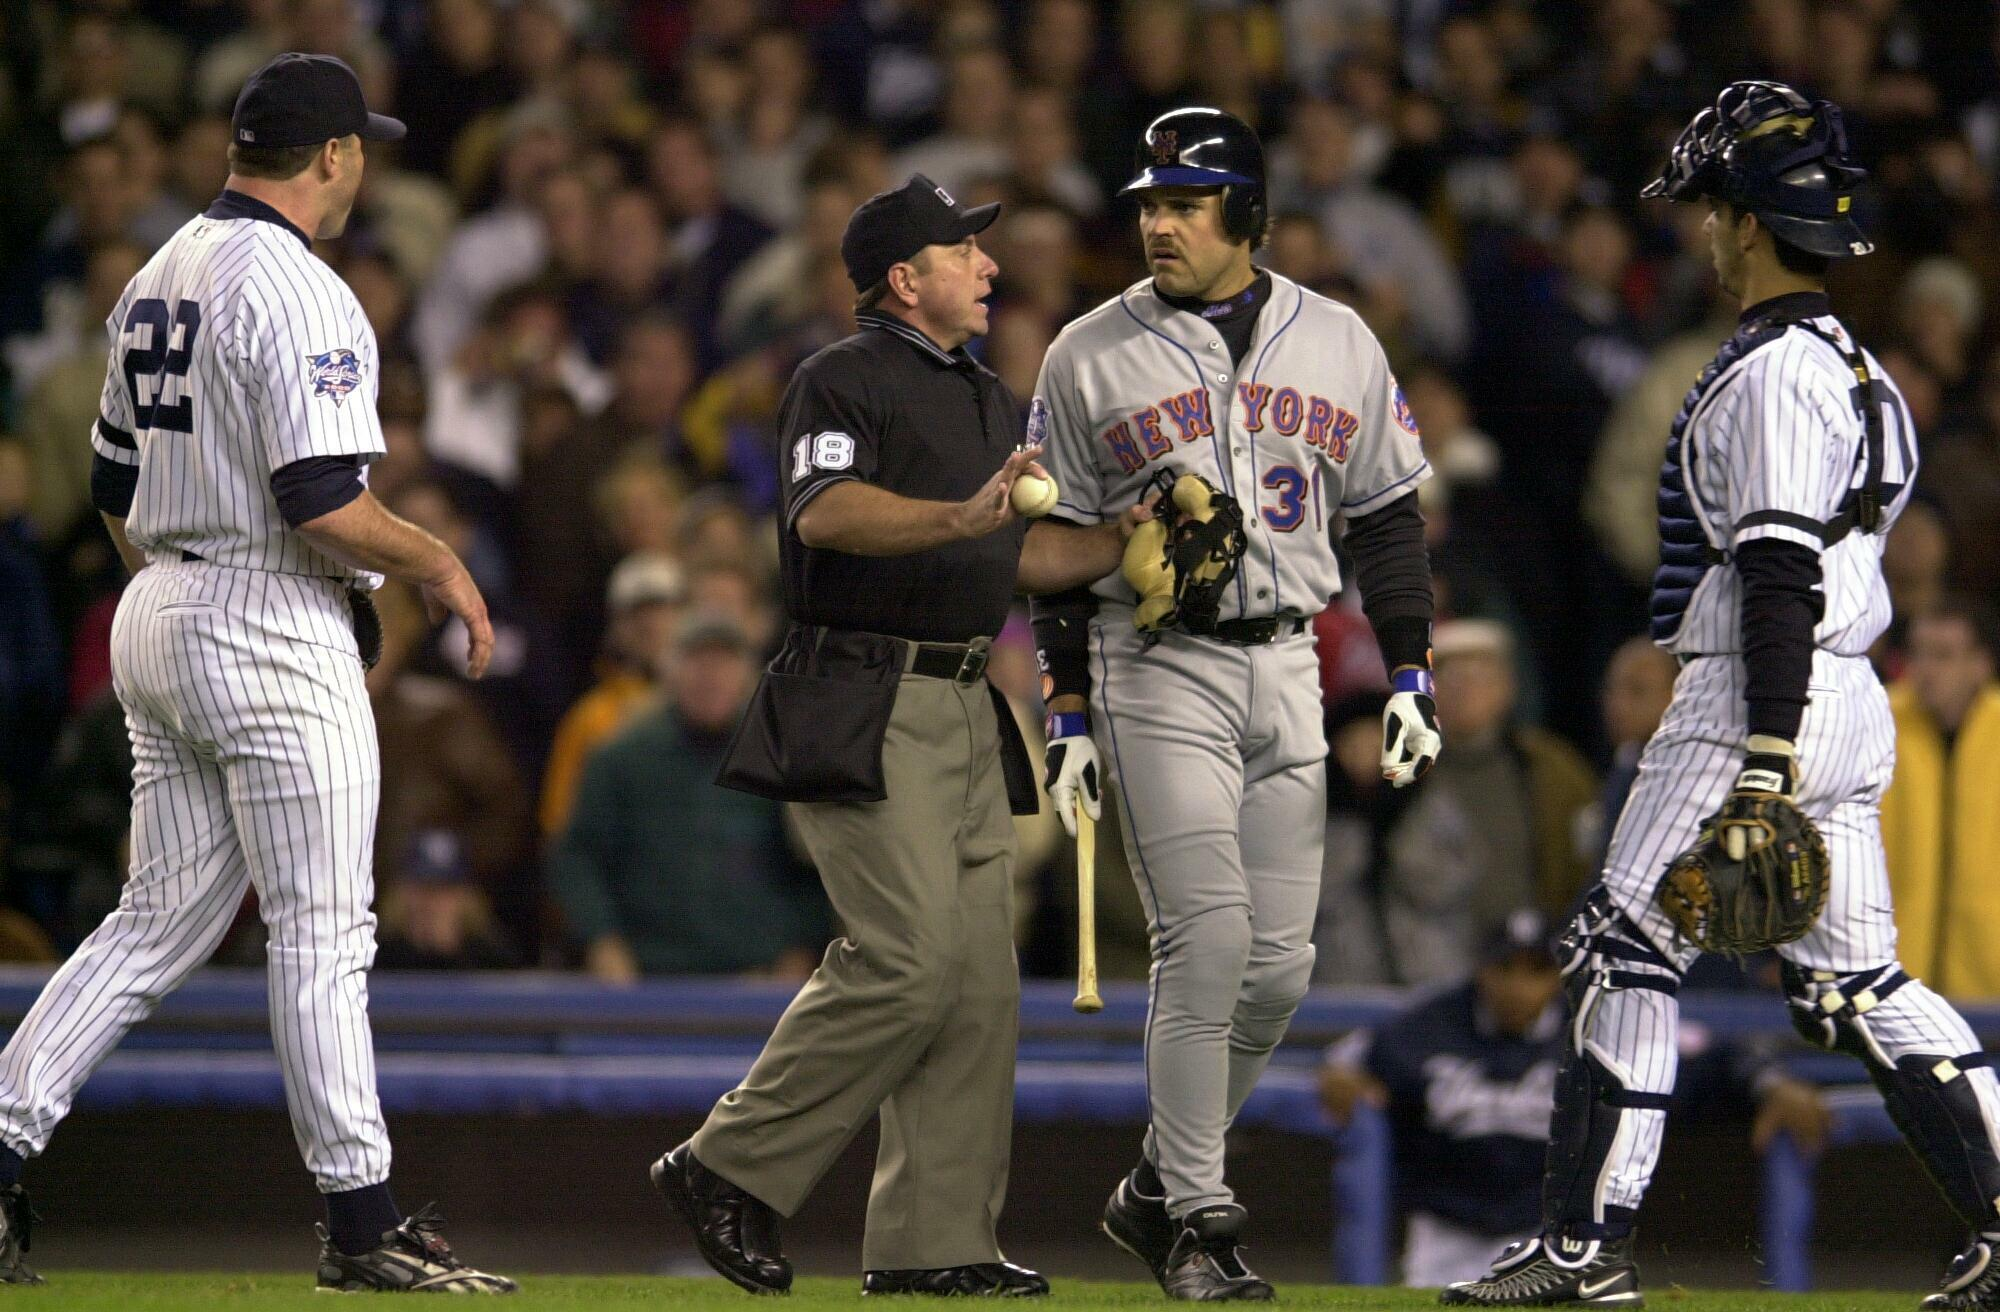 The New York Mets' Mike Piazza and the New York Yankees' Roger Clemens exchange words after Clemens threw a piece of broken bat back at Piazza in the first inning of Game 2 of the 2000 World Series at Yankee Stadium.